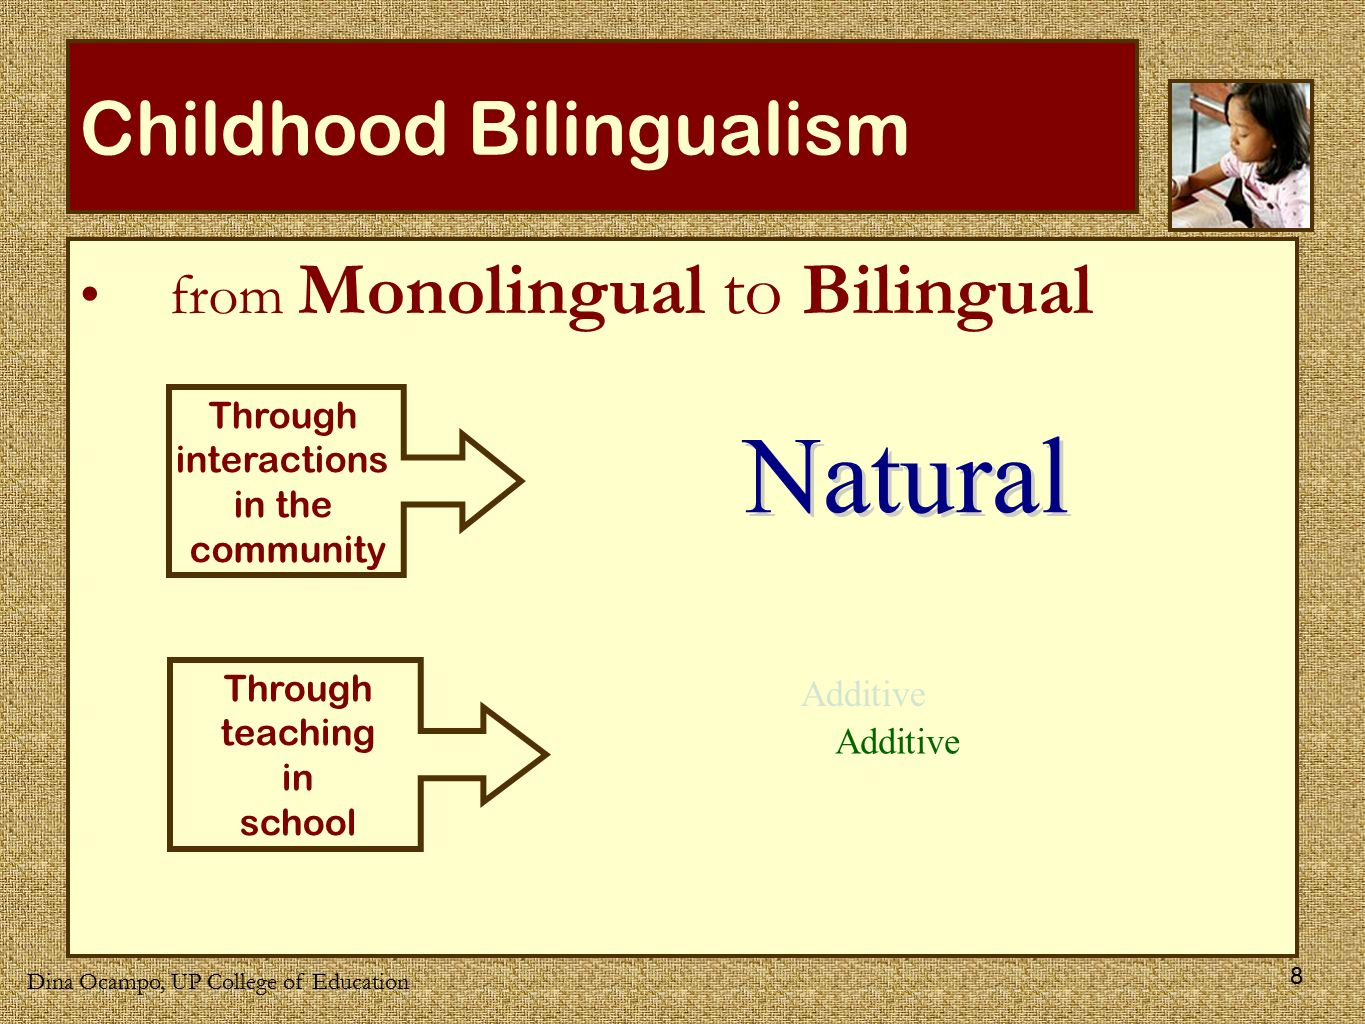 A description of the bilingual education the present system needs to be changed